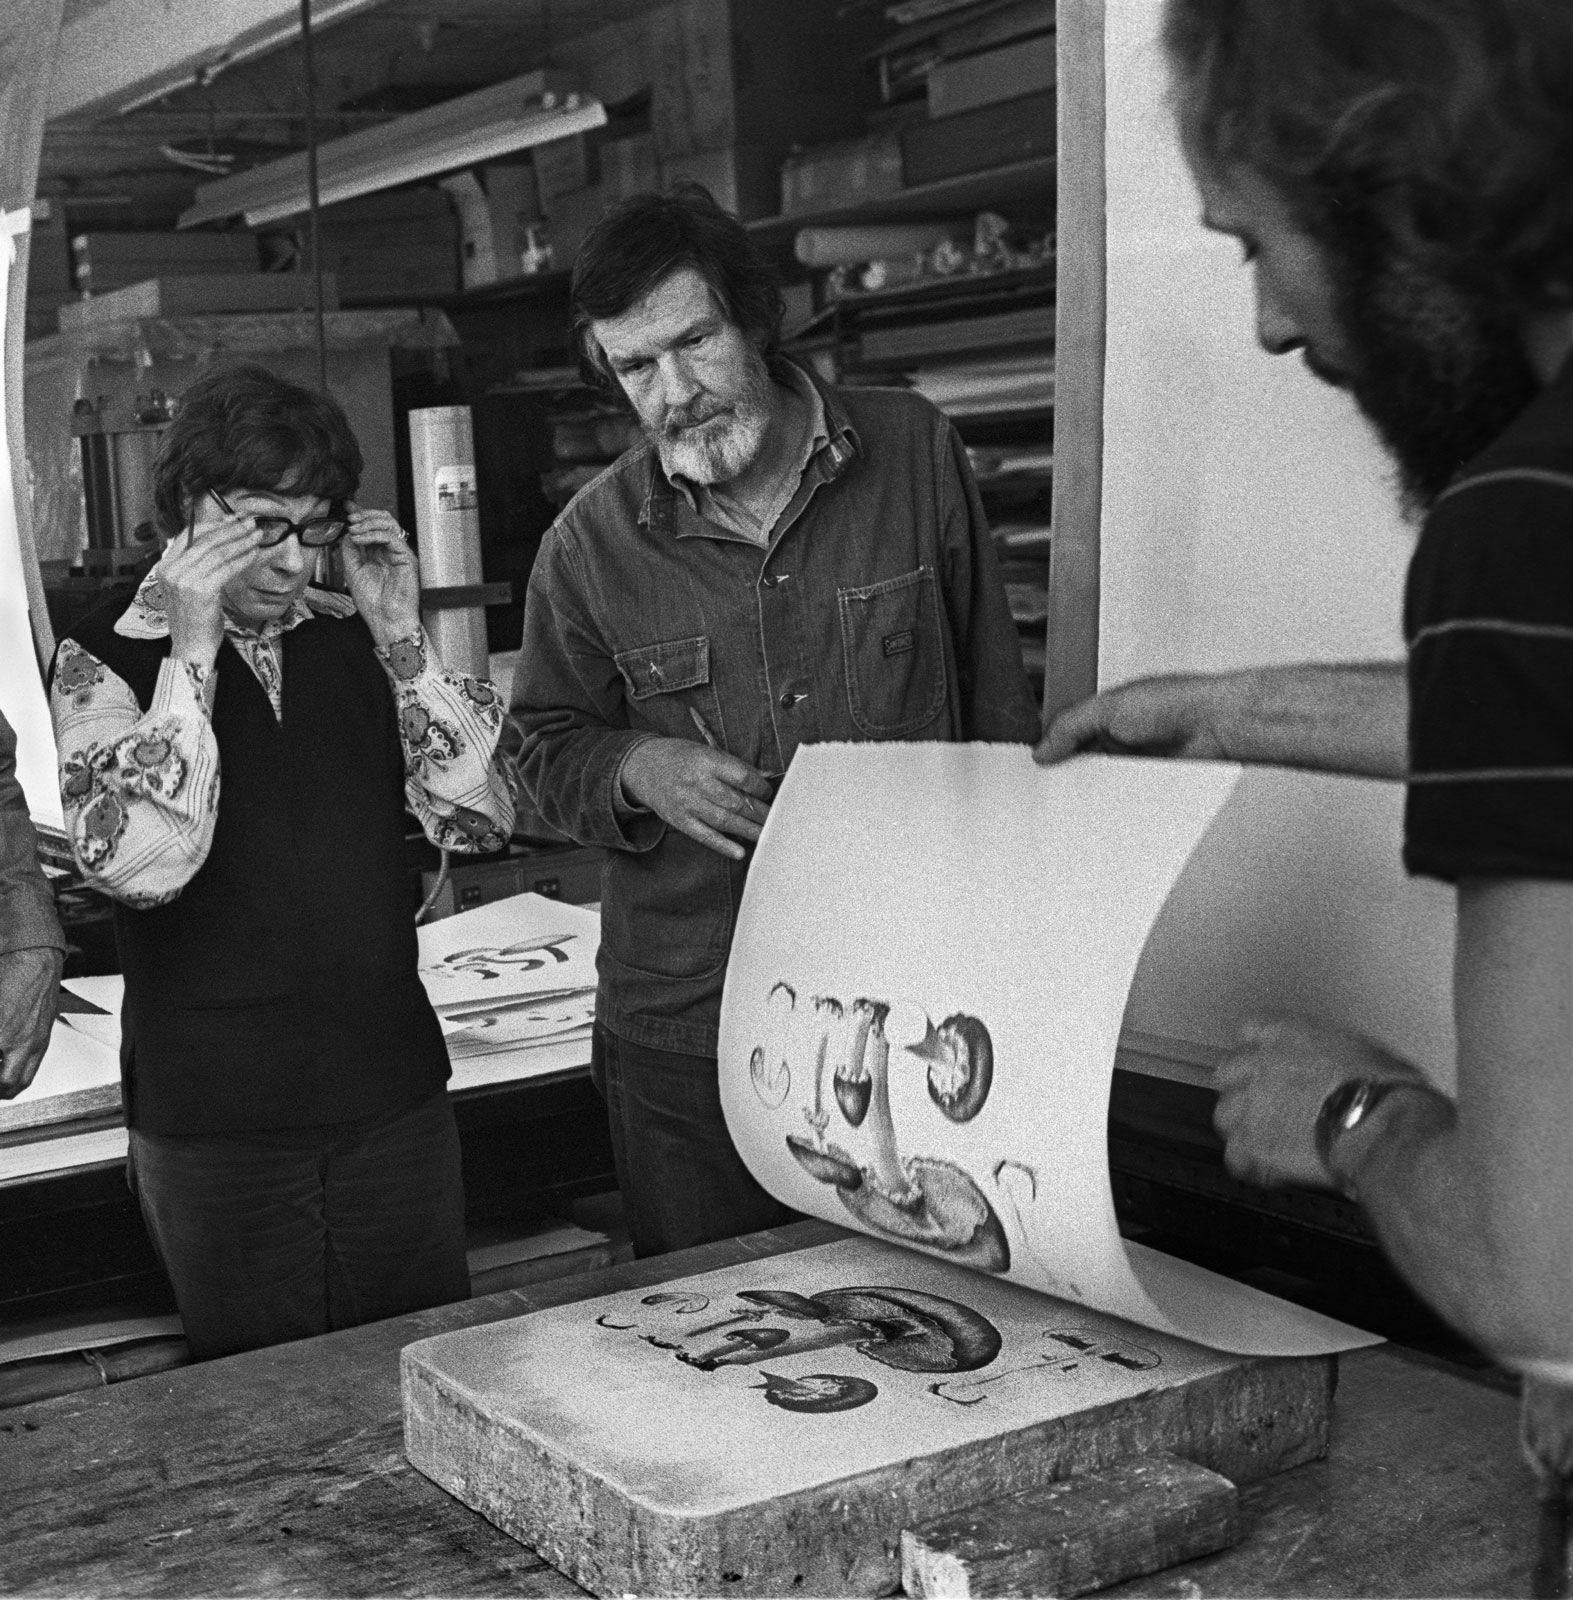 Cage and Lois Long overseeing the printing of Mushroom Book at Hollander Workshop, NY in 1972